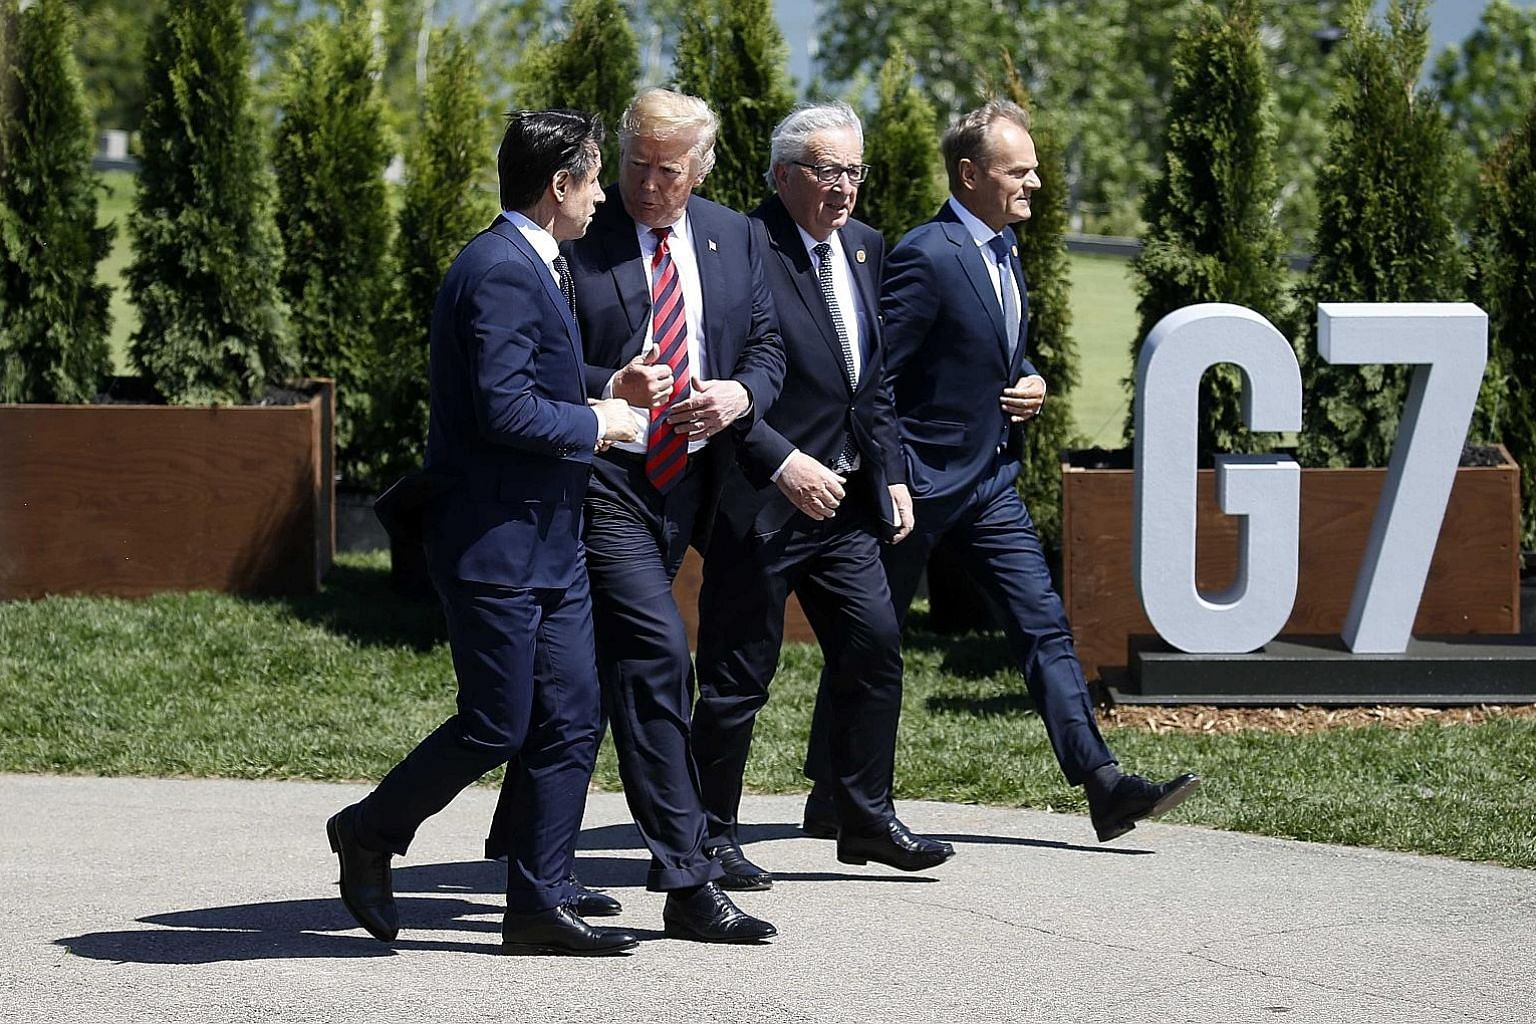 From far left: Italy's Prime Minister Giuseppe Conte, US President Donald Trump, European Commission president Jean-Claude Juncker and European Council head Donald Tusk at the Group of Seven summit in Canada last month.